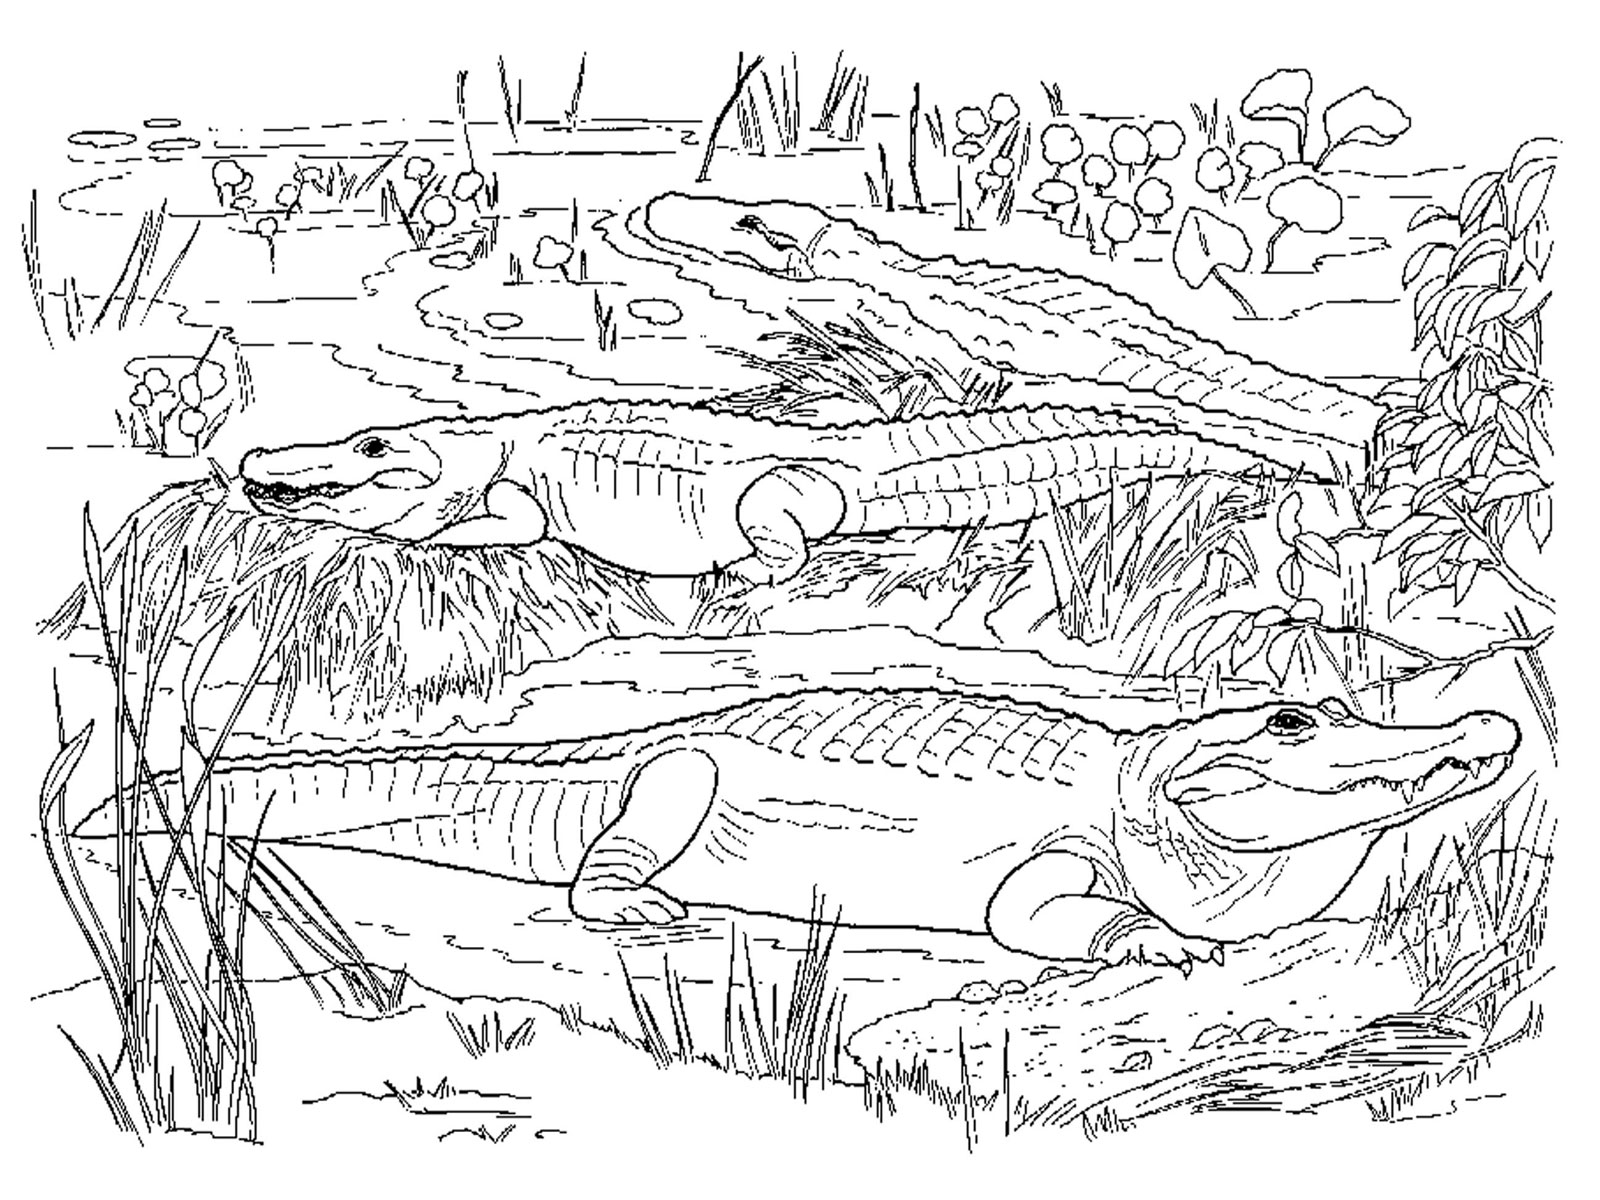 alligator coloring page alligator coloring page art starts for kids alligator page coloring